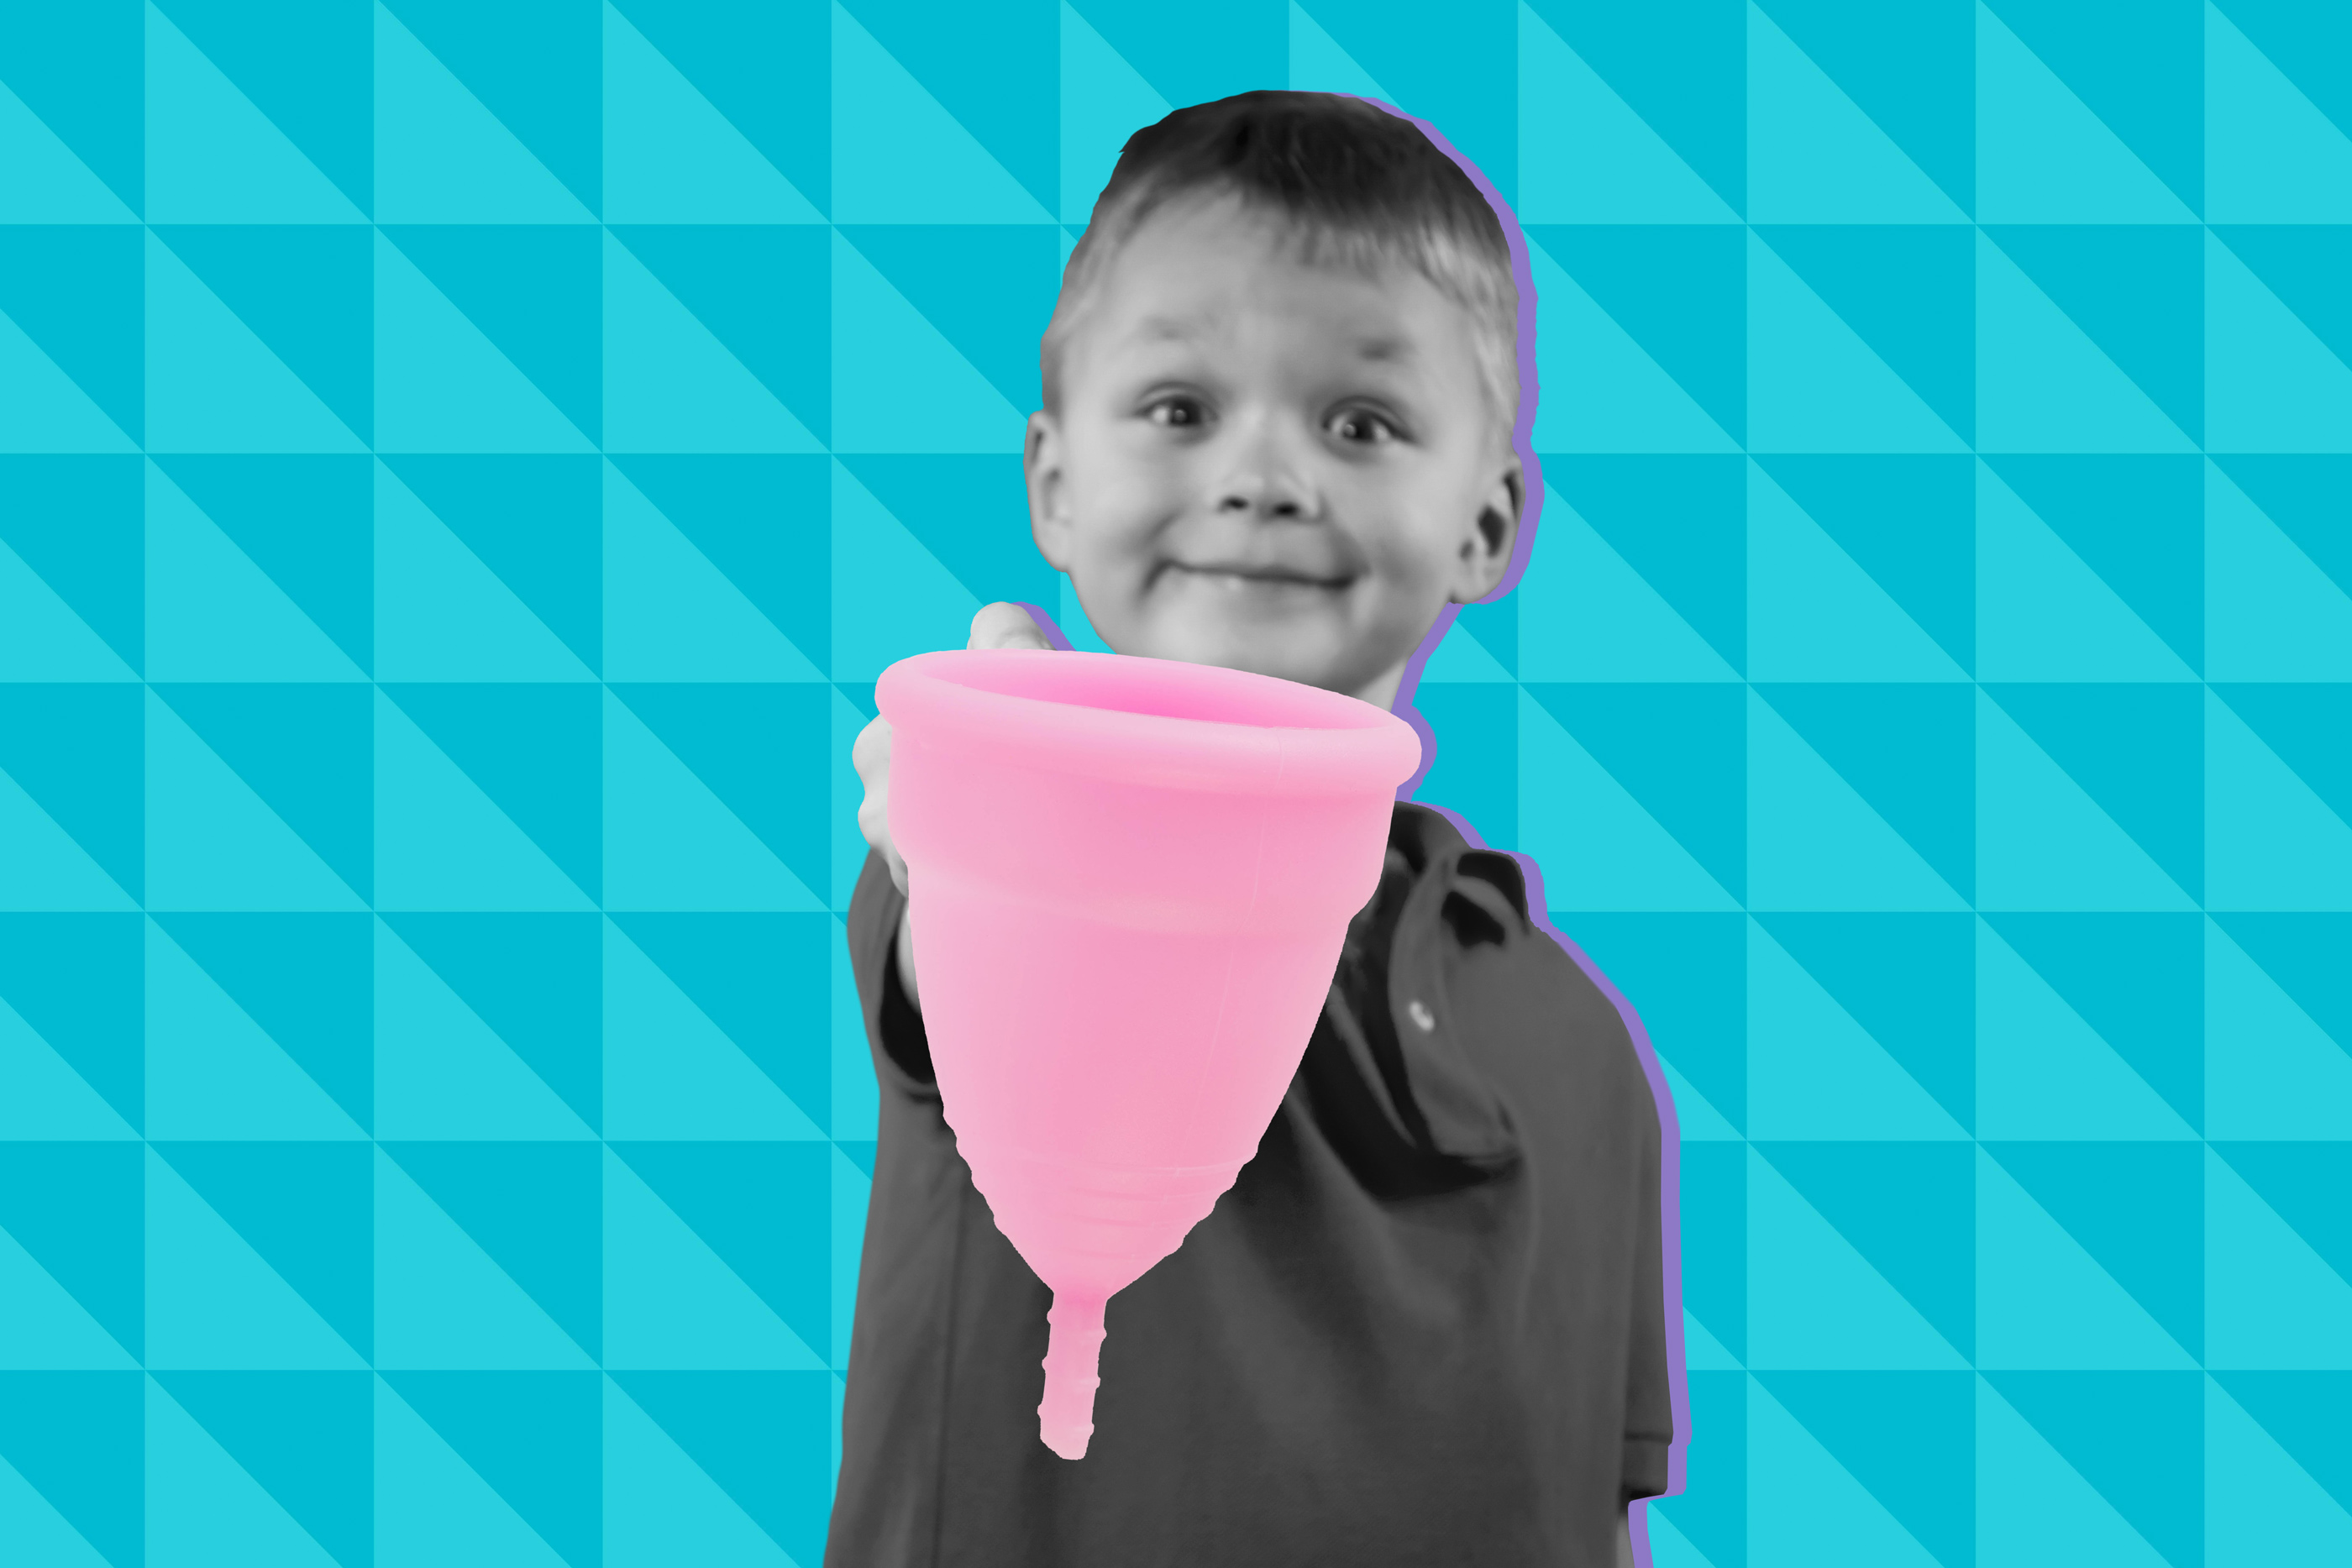 Dad Unknowingly Lets Son Bring Mom's Menstrual Cup For Show And Tell